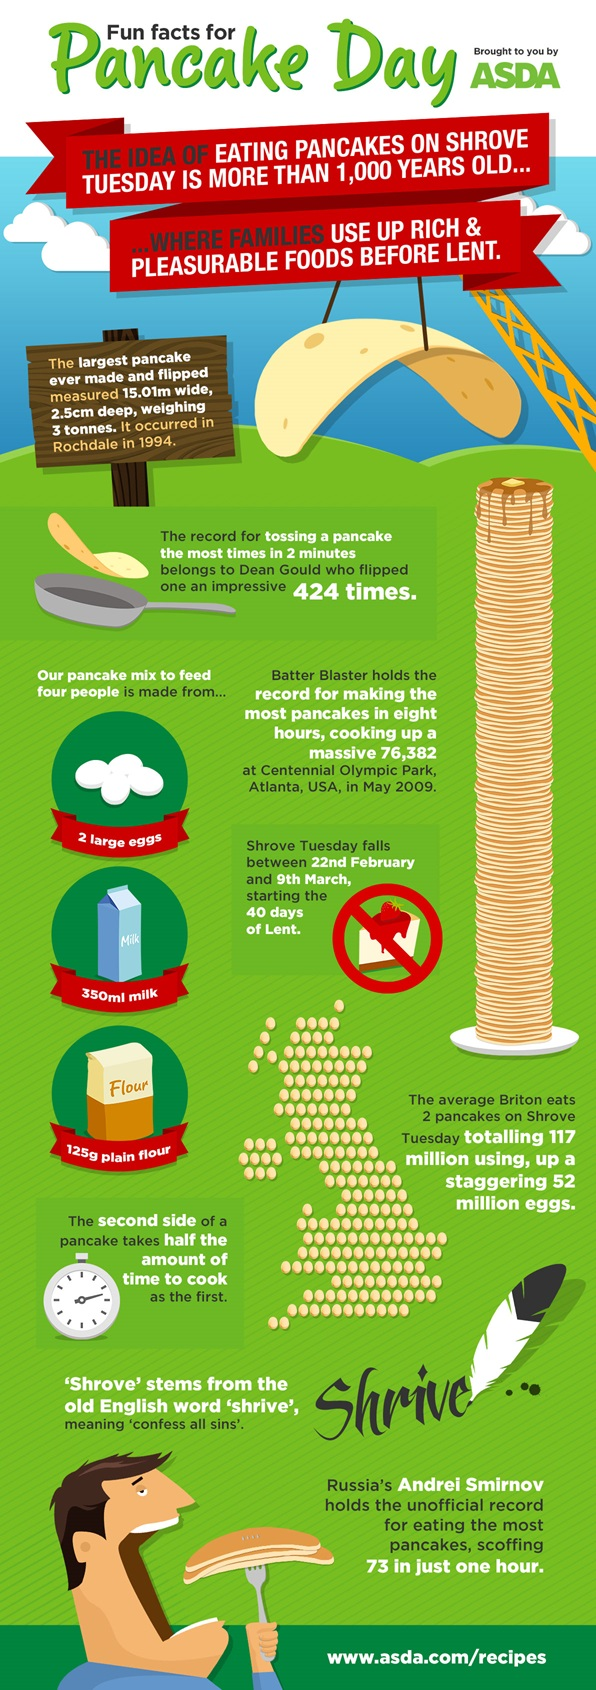 asda-fun-facts-pancake-day